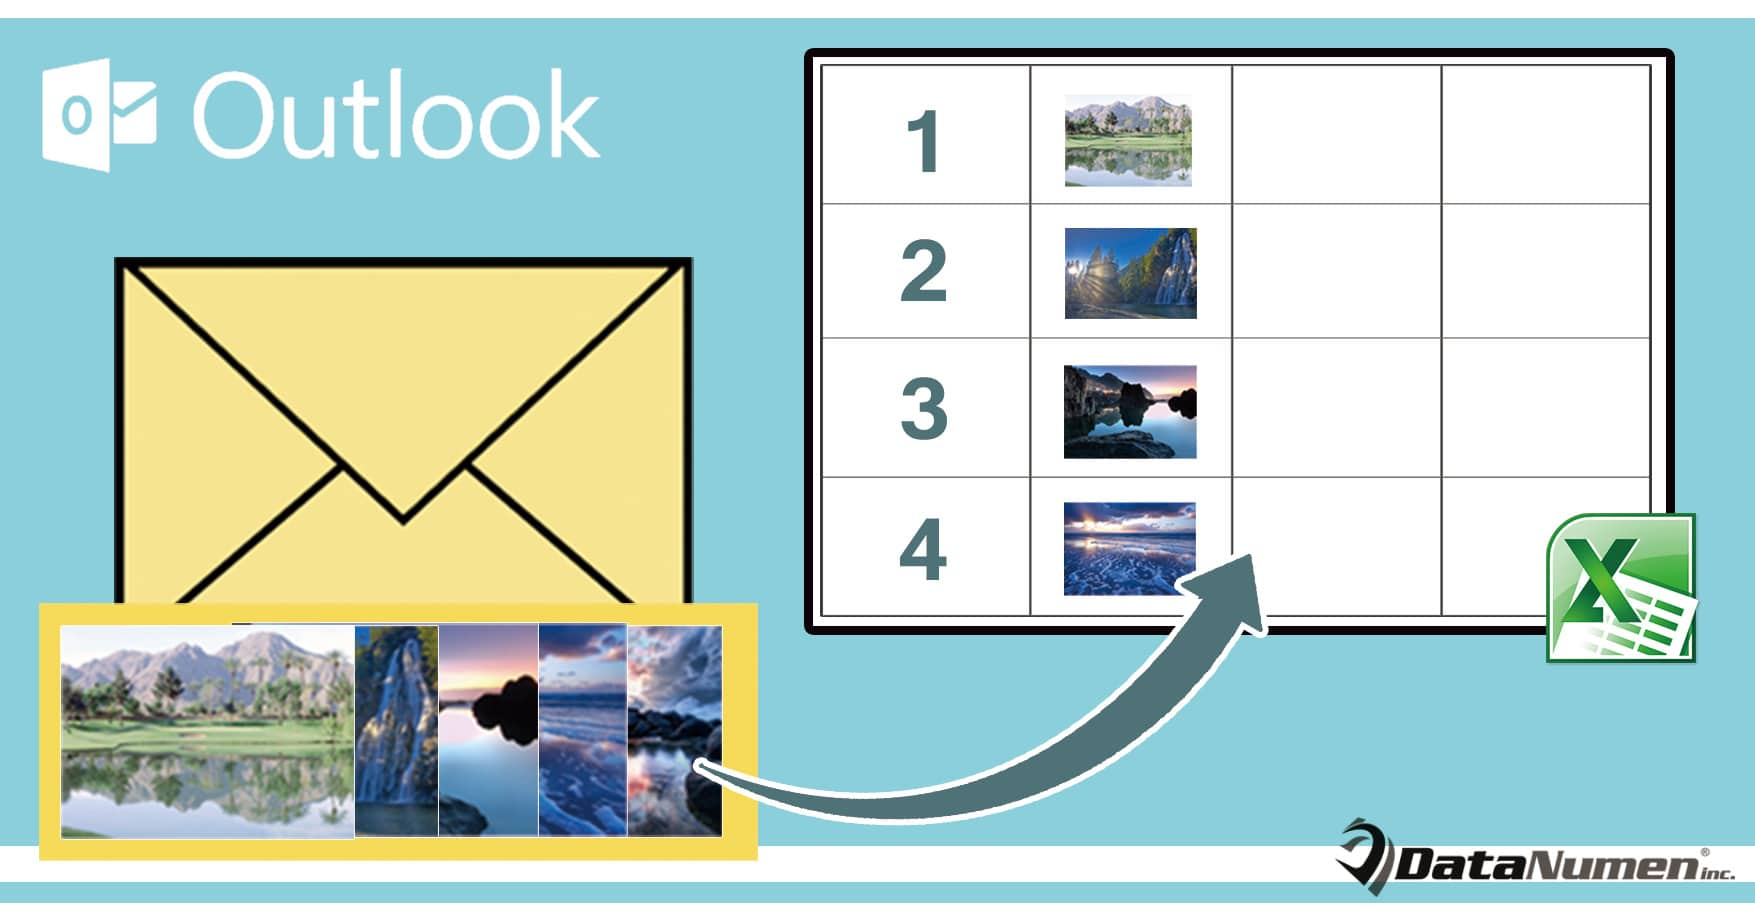 How To Quickly Export All Image Attachments Of An Outlook